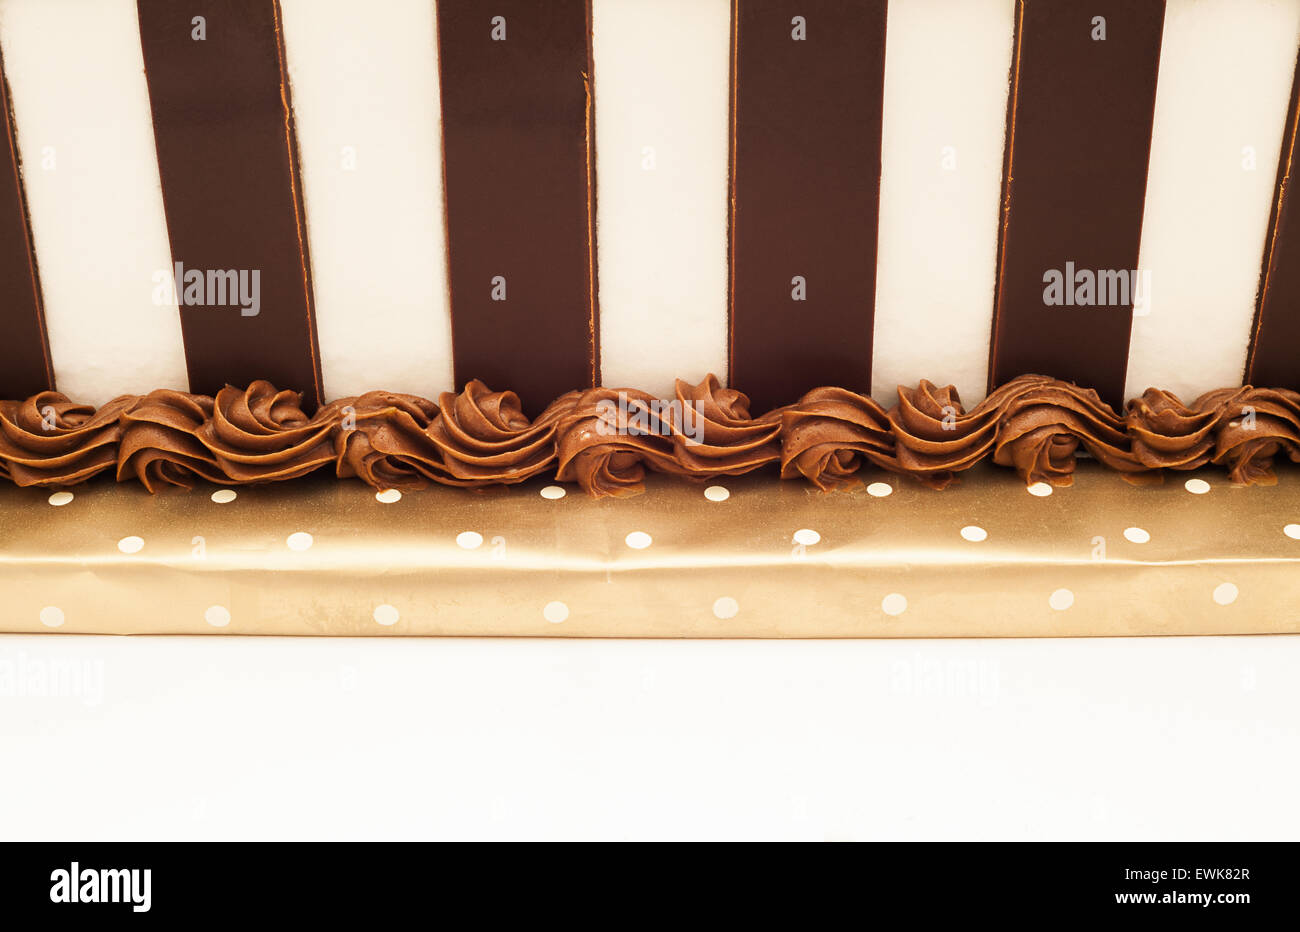 One part of a chocolate cake, cream decoration at bottom of a cake. - Stock Image